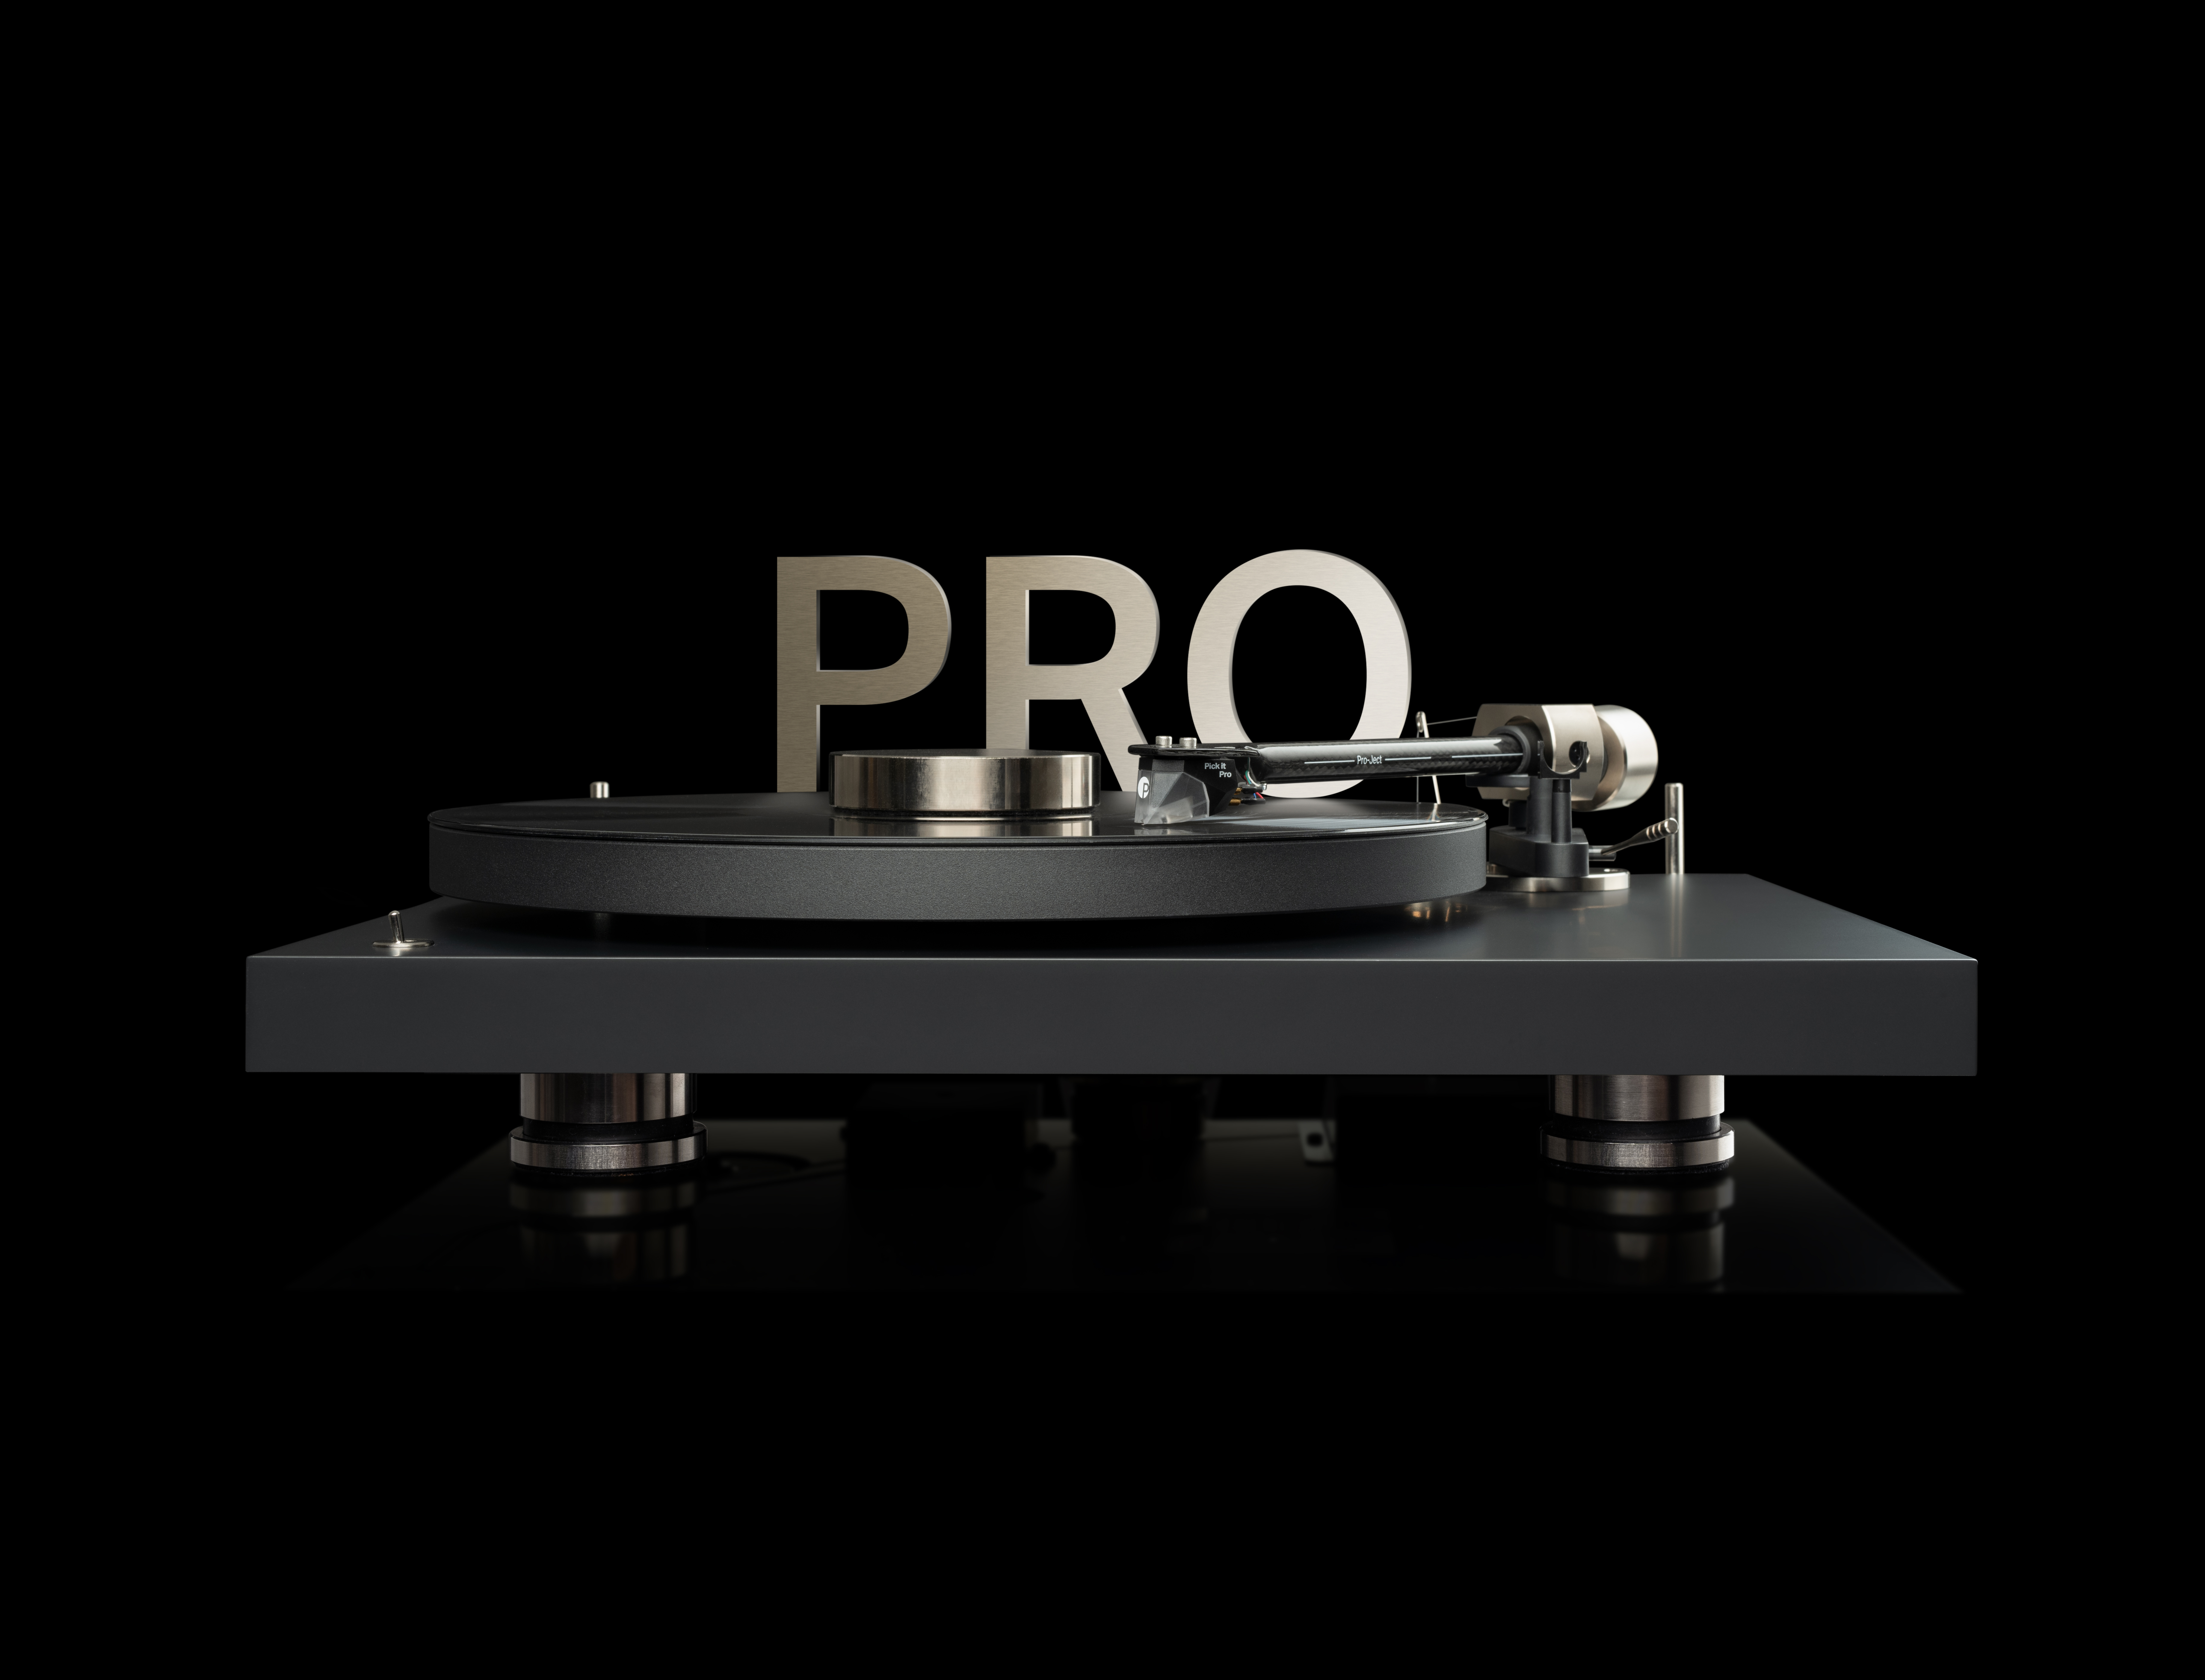 Pro Ject Debut Pro